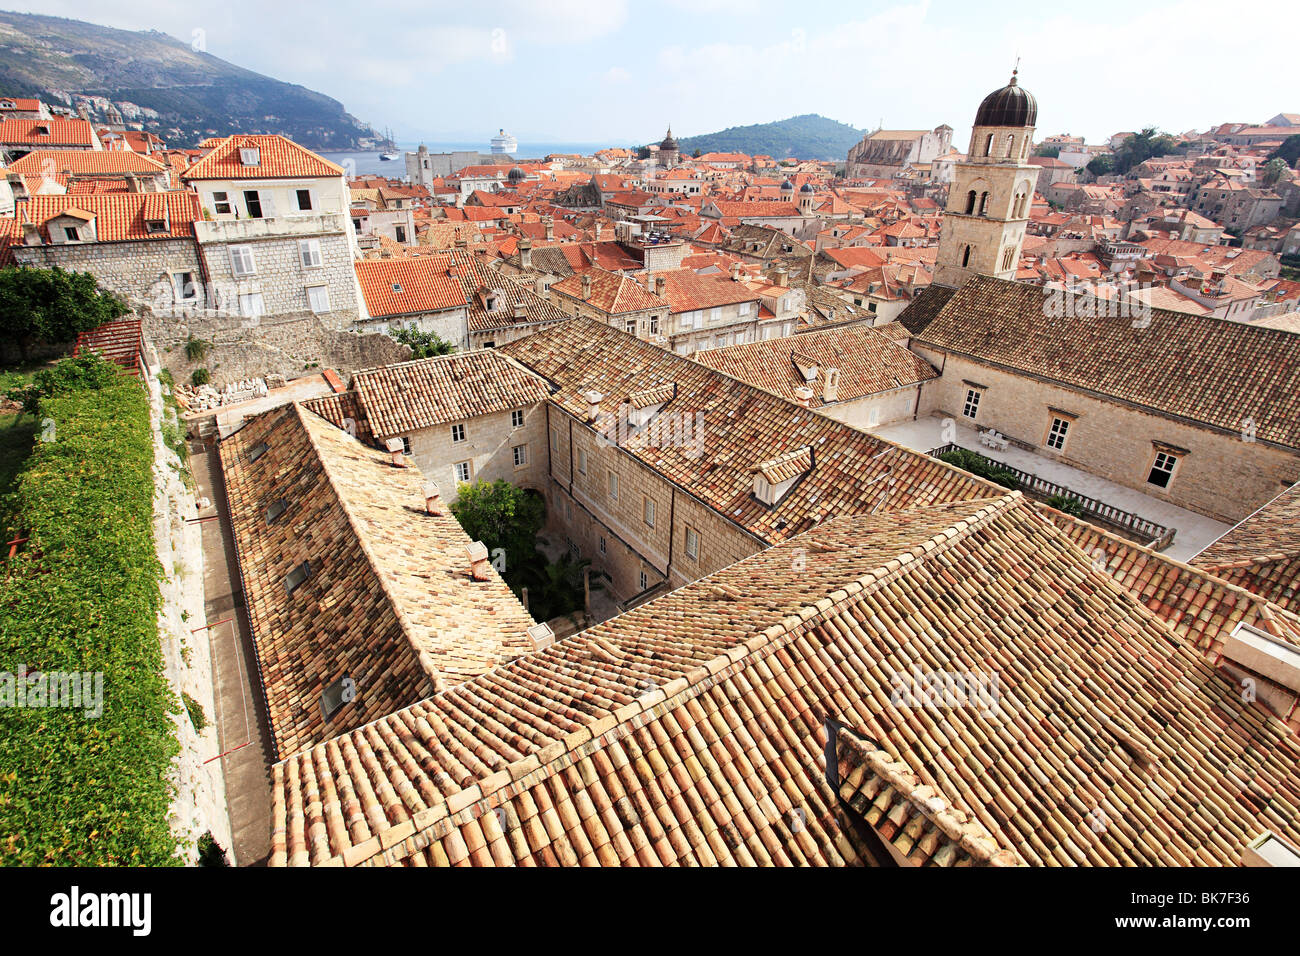 Monastery and buildings in dubrovnik - Stock Image